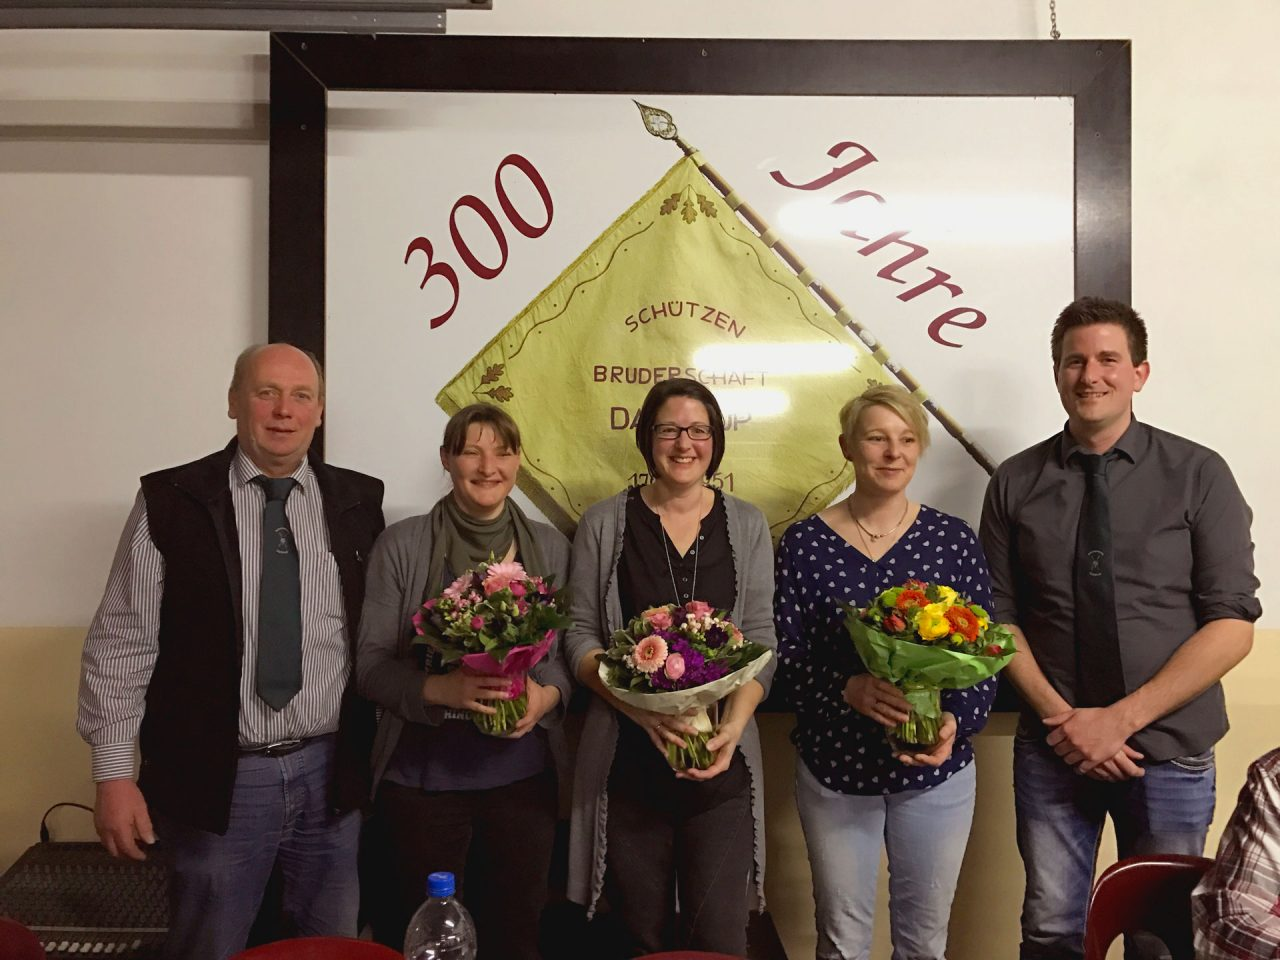 Schützenverein Daldrup, Martin Heitmann (1. Vorsitzender); Katrin Schmelter (Ehrendame); Nicole Hülsheger (Ehrendame); Bettina Kruse (Königin); Michael Denter (2. Vorsitzender)